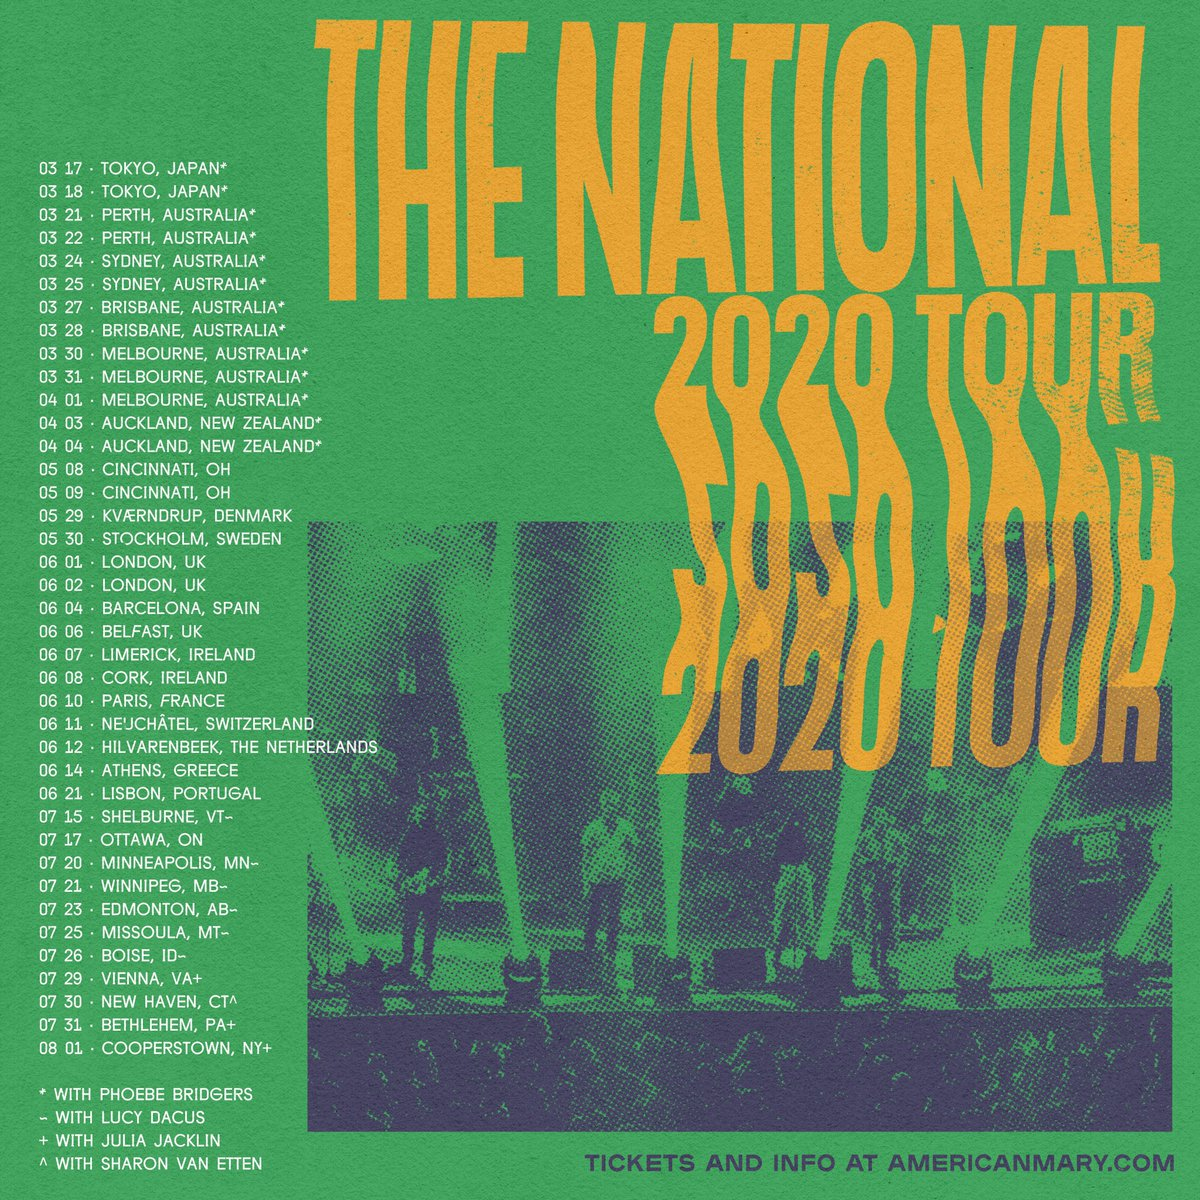 Playing a few of these shows ❤️ @TheNational